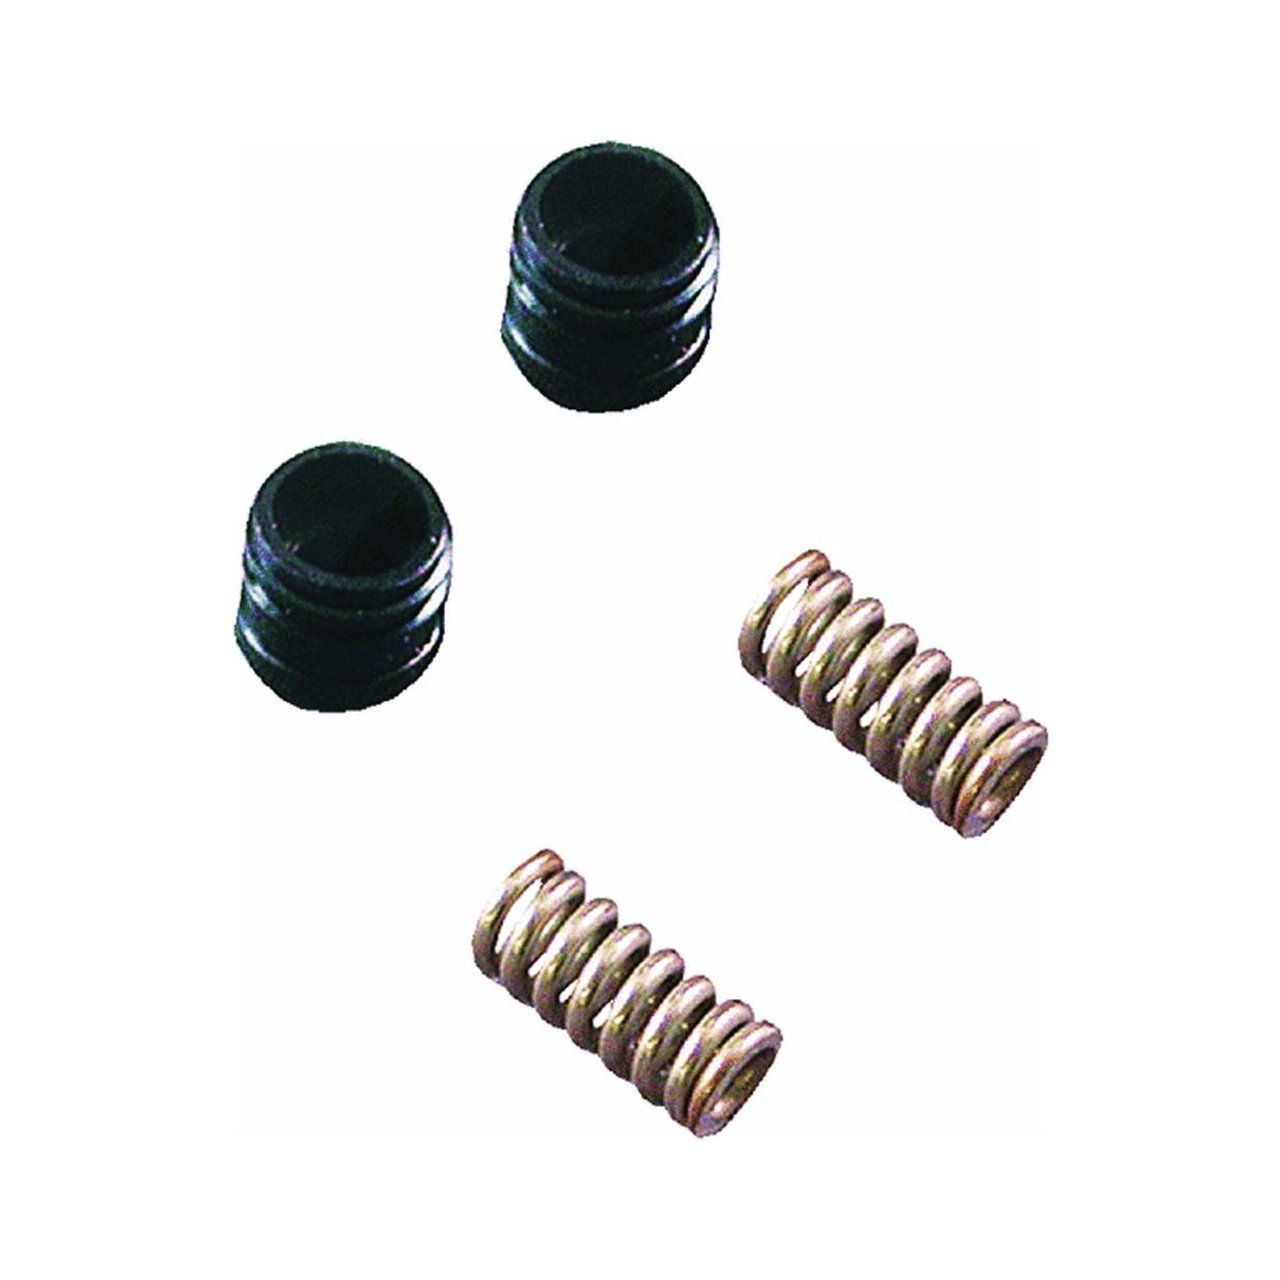 Danco Perfect Match Seats And Springs For Milwaukee Faucet Repair ...